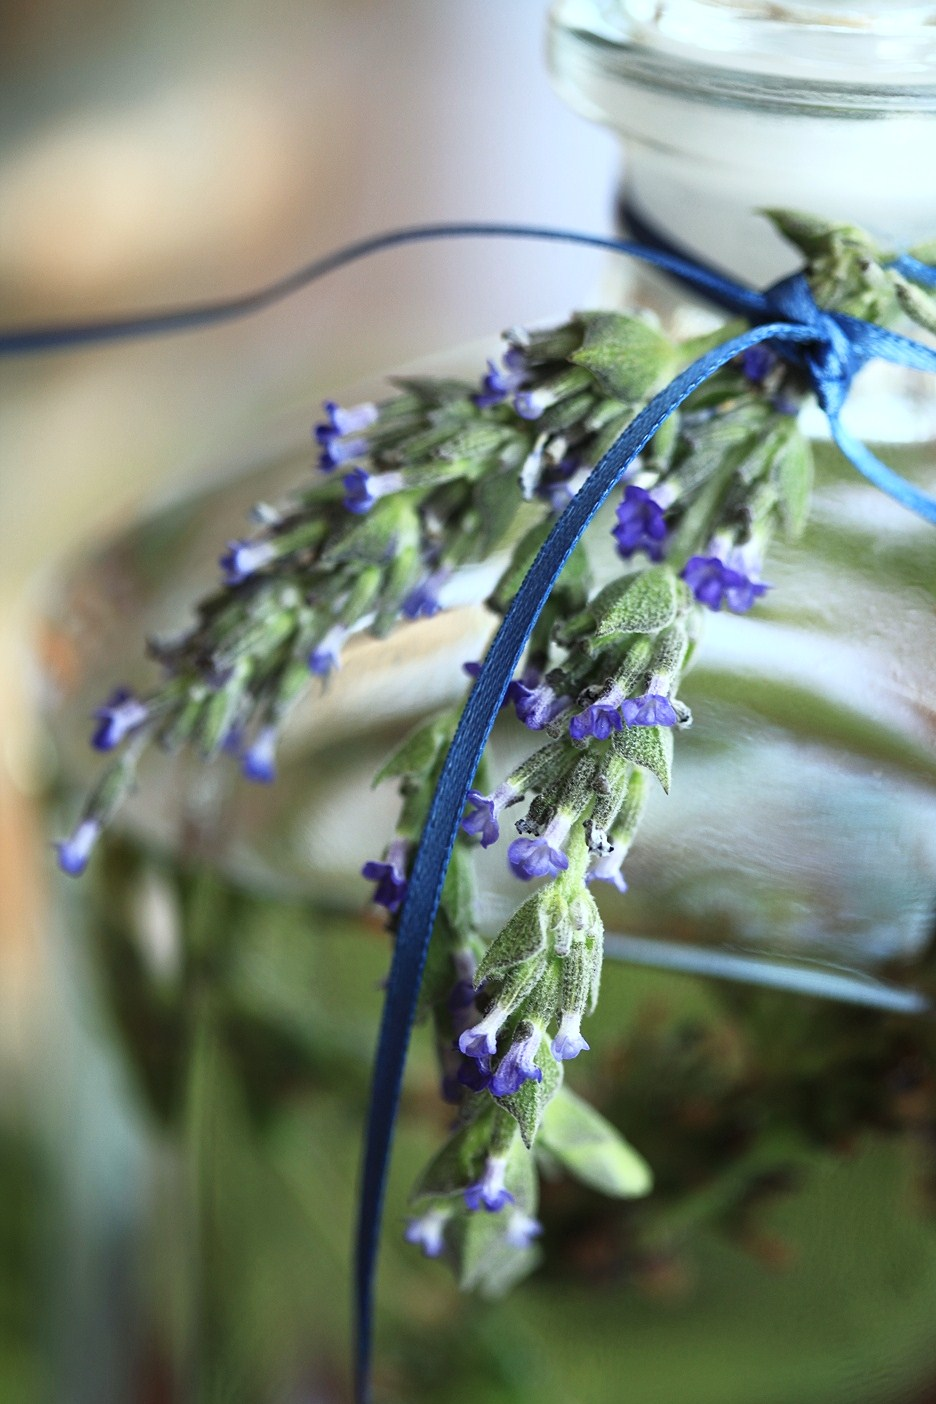 How to Make Lavender Ironing Water